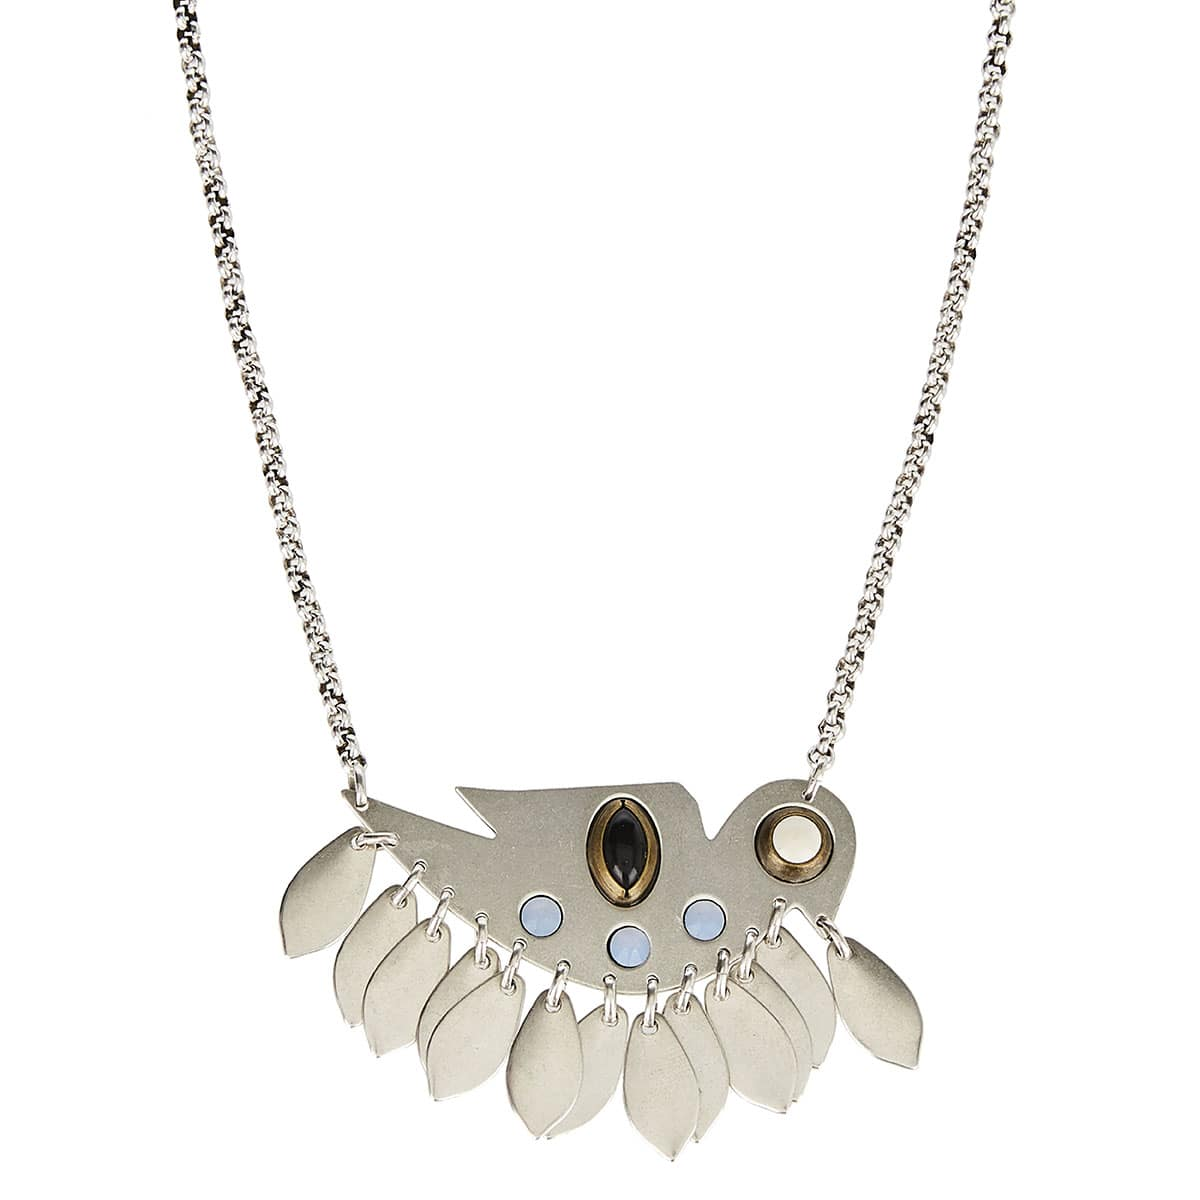 Birdy studded brass necklace